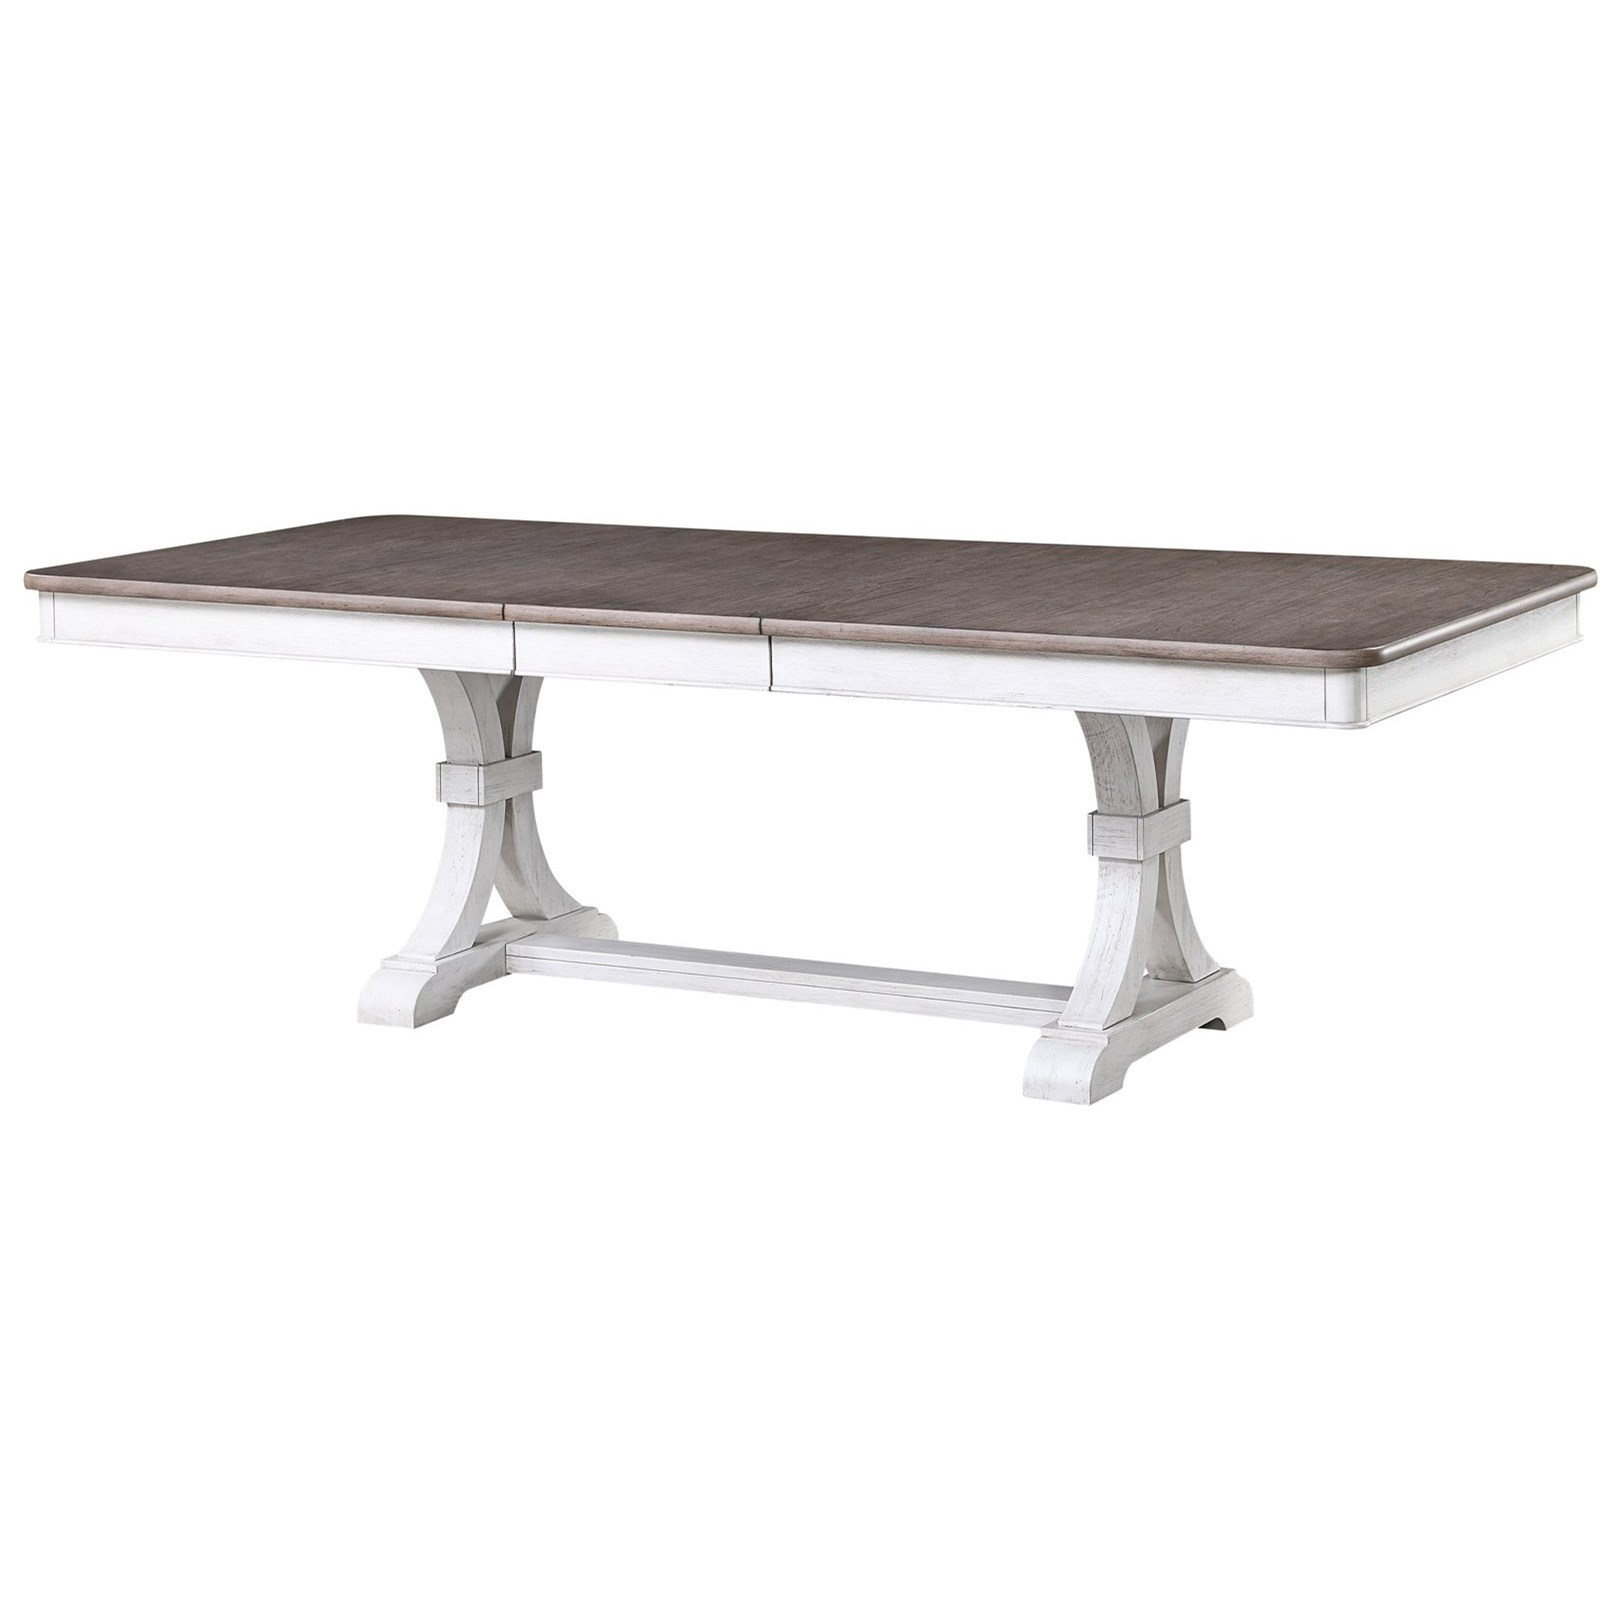 Sonoma Dining Table by Panama Jack by Palmetto Home at Baer's Furniture